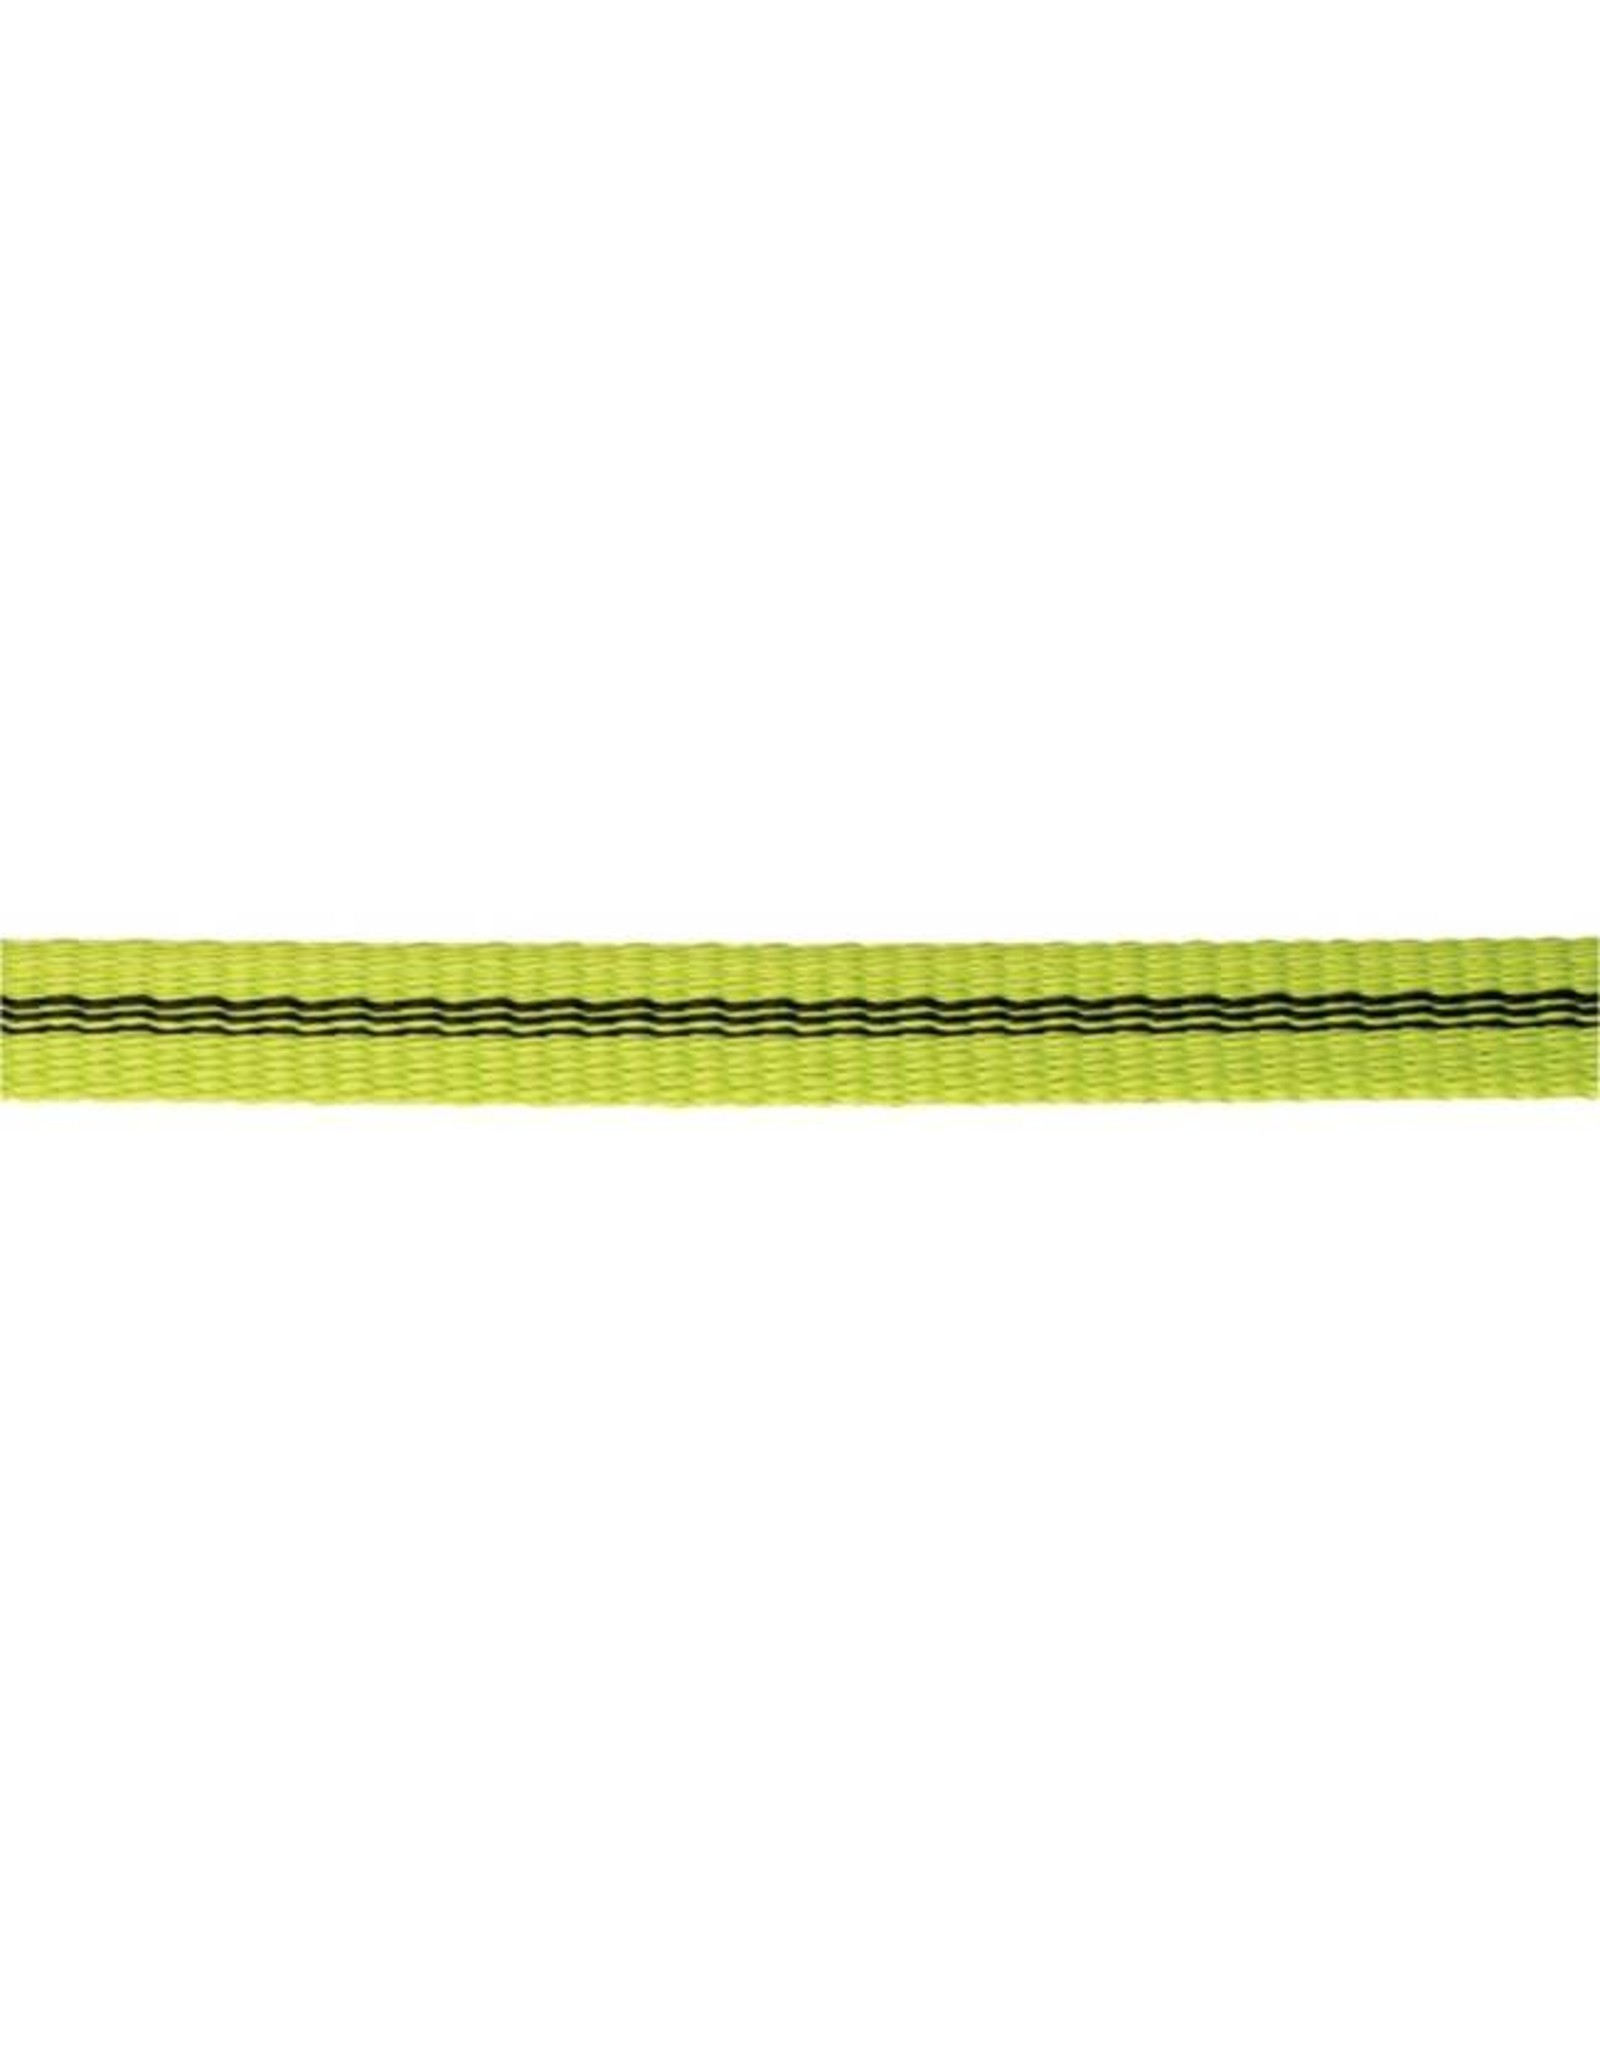 Edelrid Edelrid Tech Web 12 mm